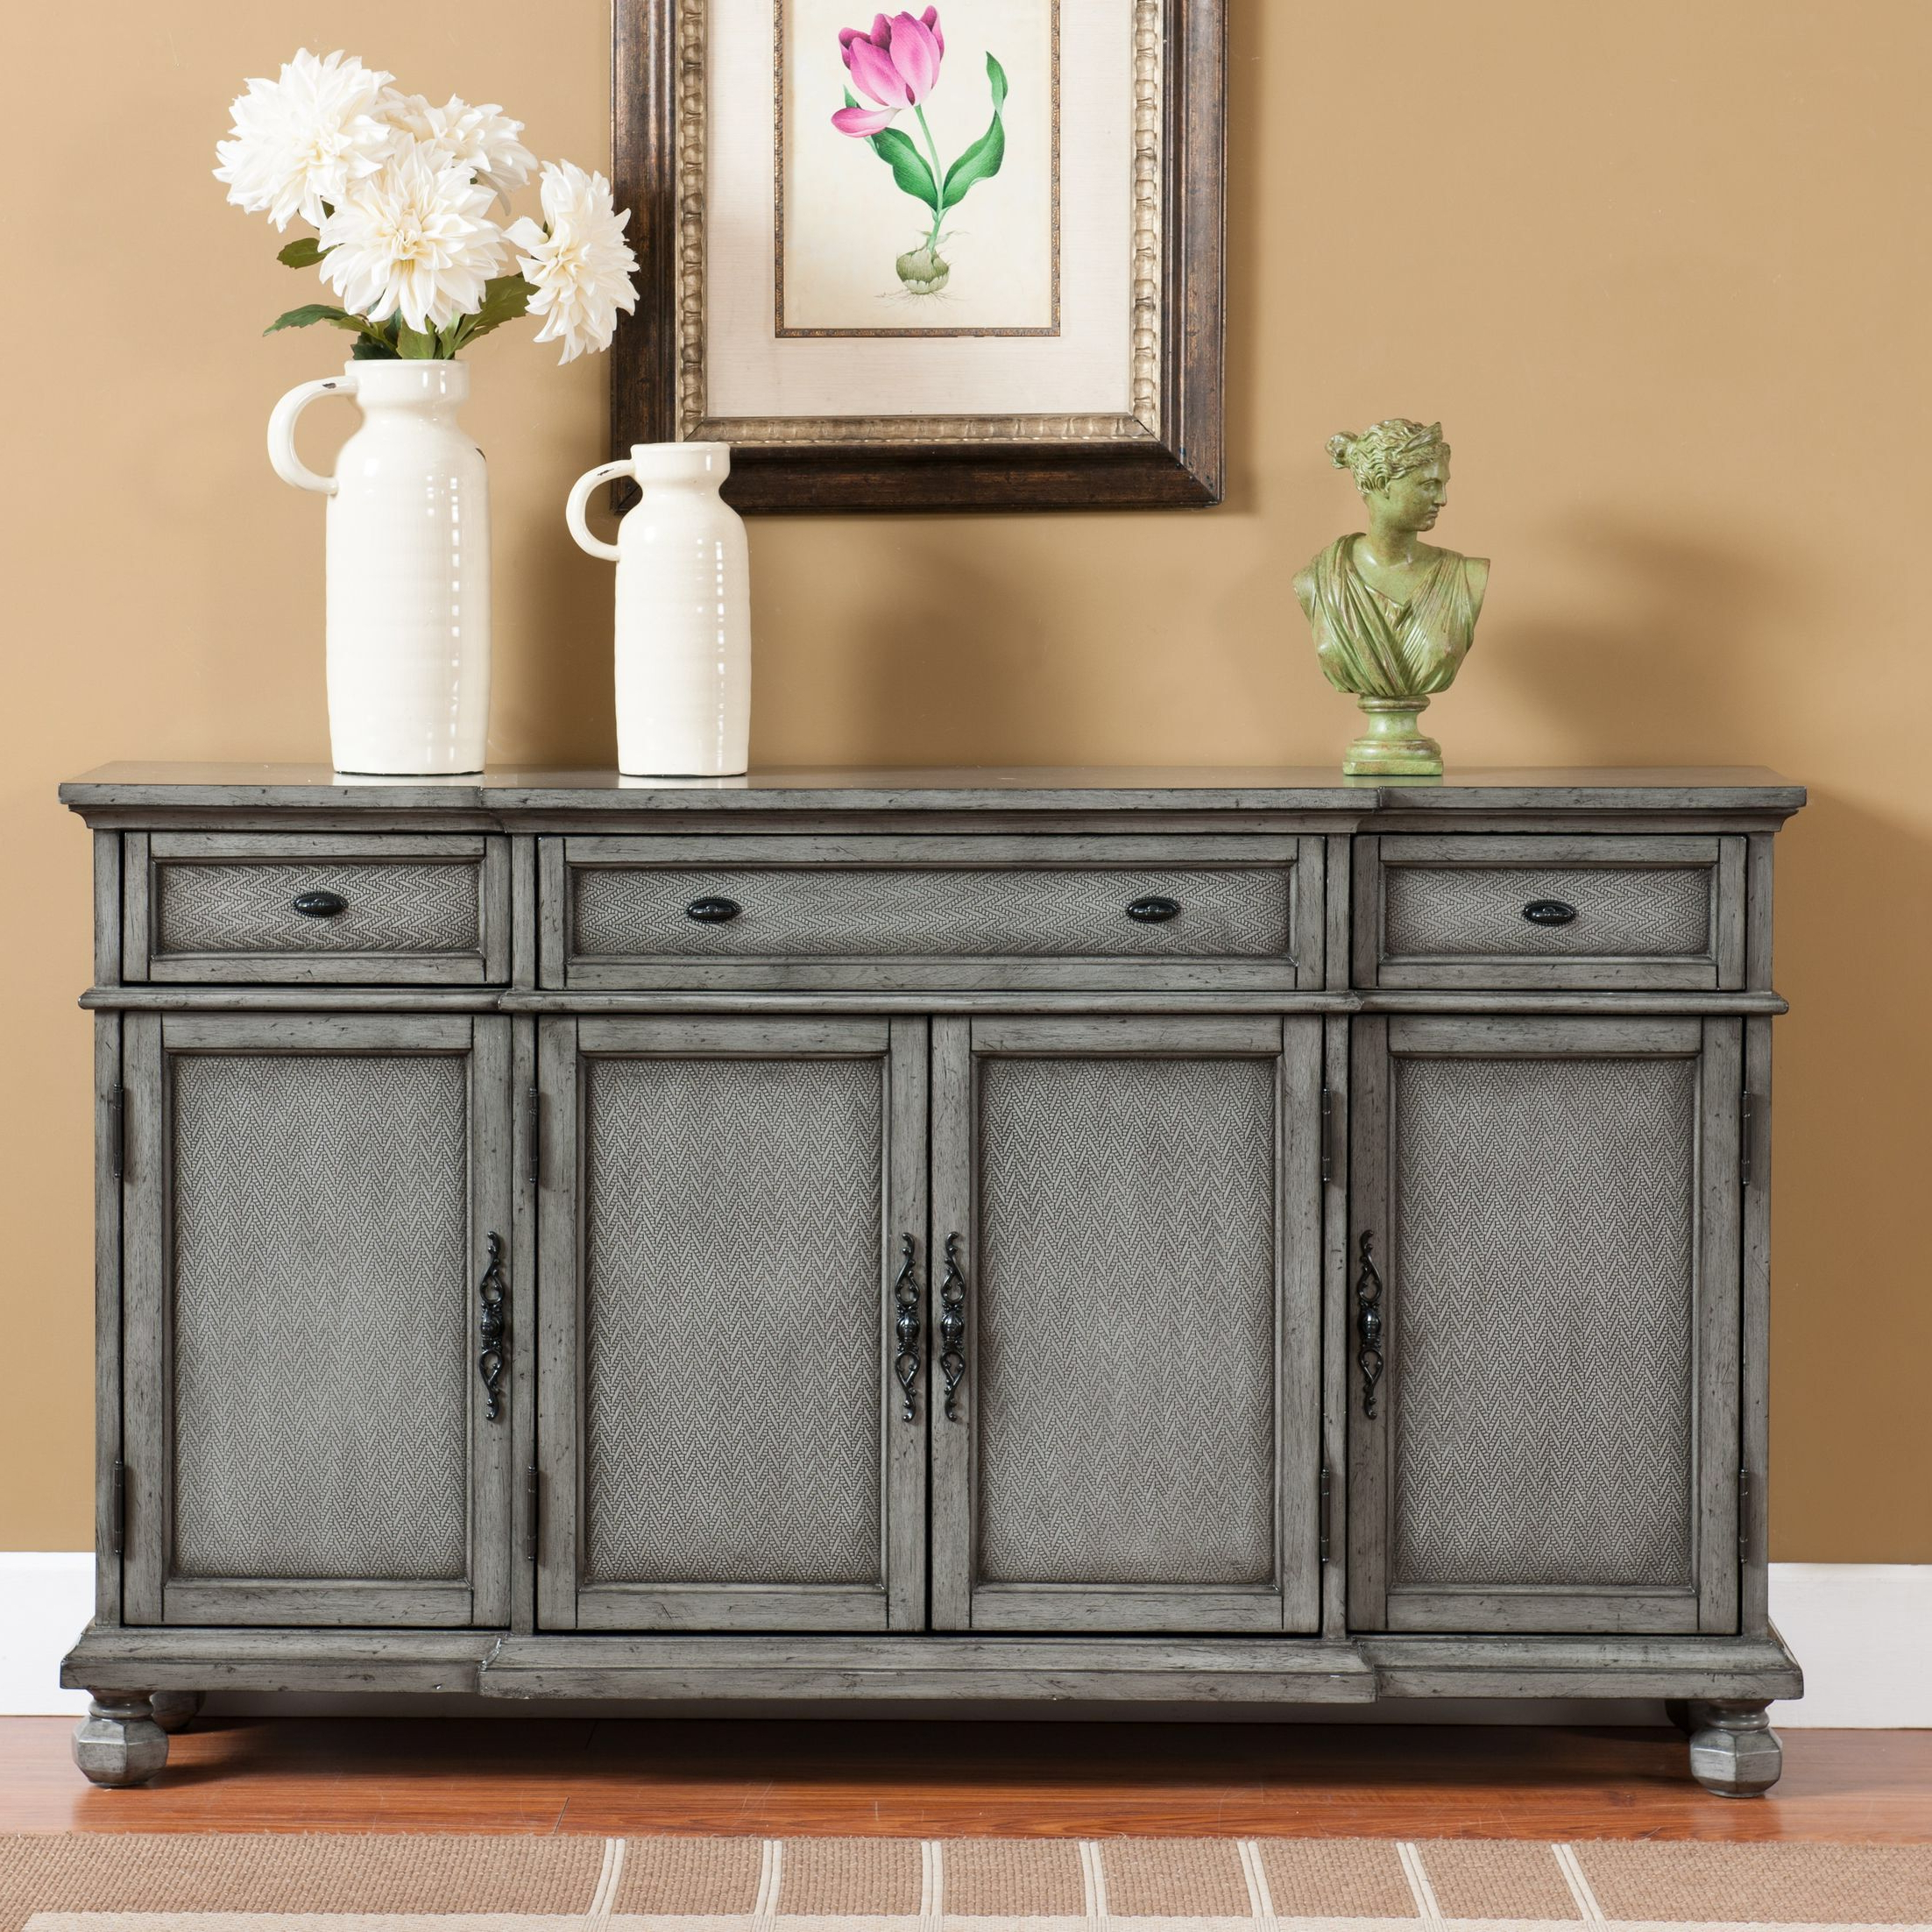 Giulia 3 Drawer Credenza | Tables & Chairs | Credenza Intended For Giulia 3 Drawer Credenzas (View 3 of 20)